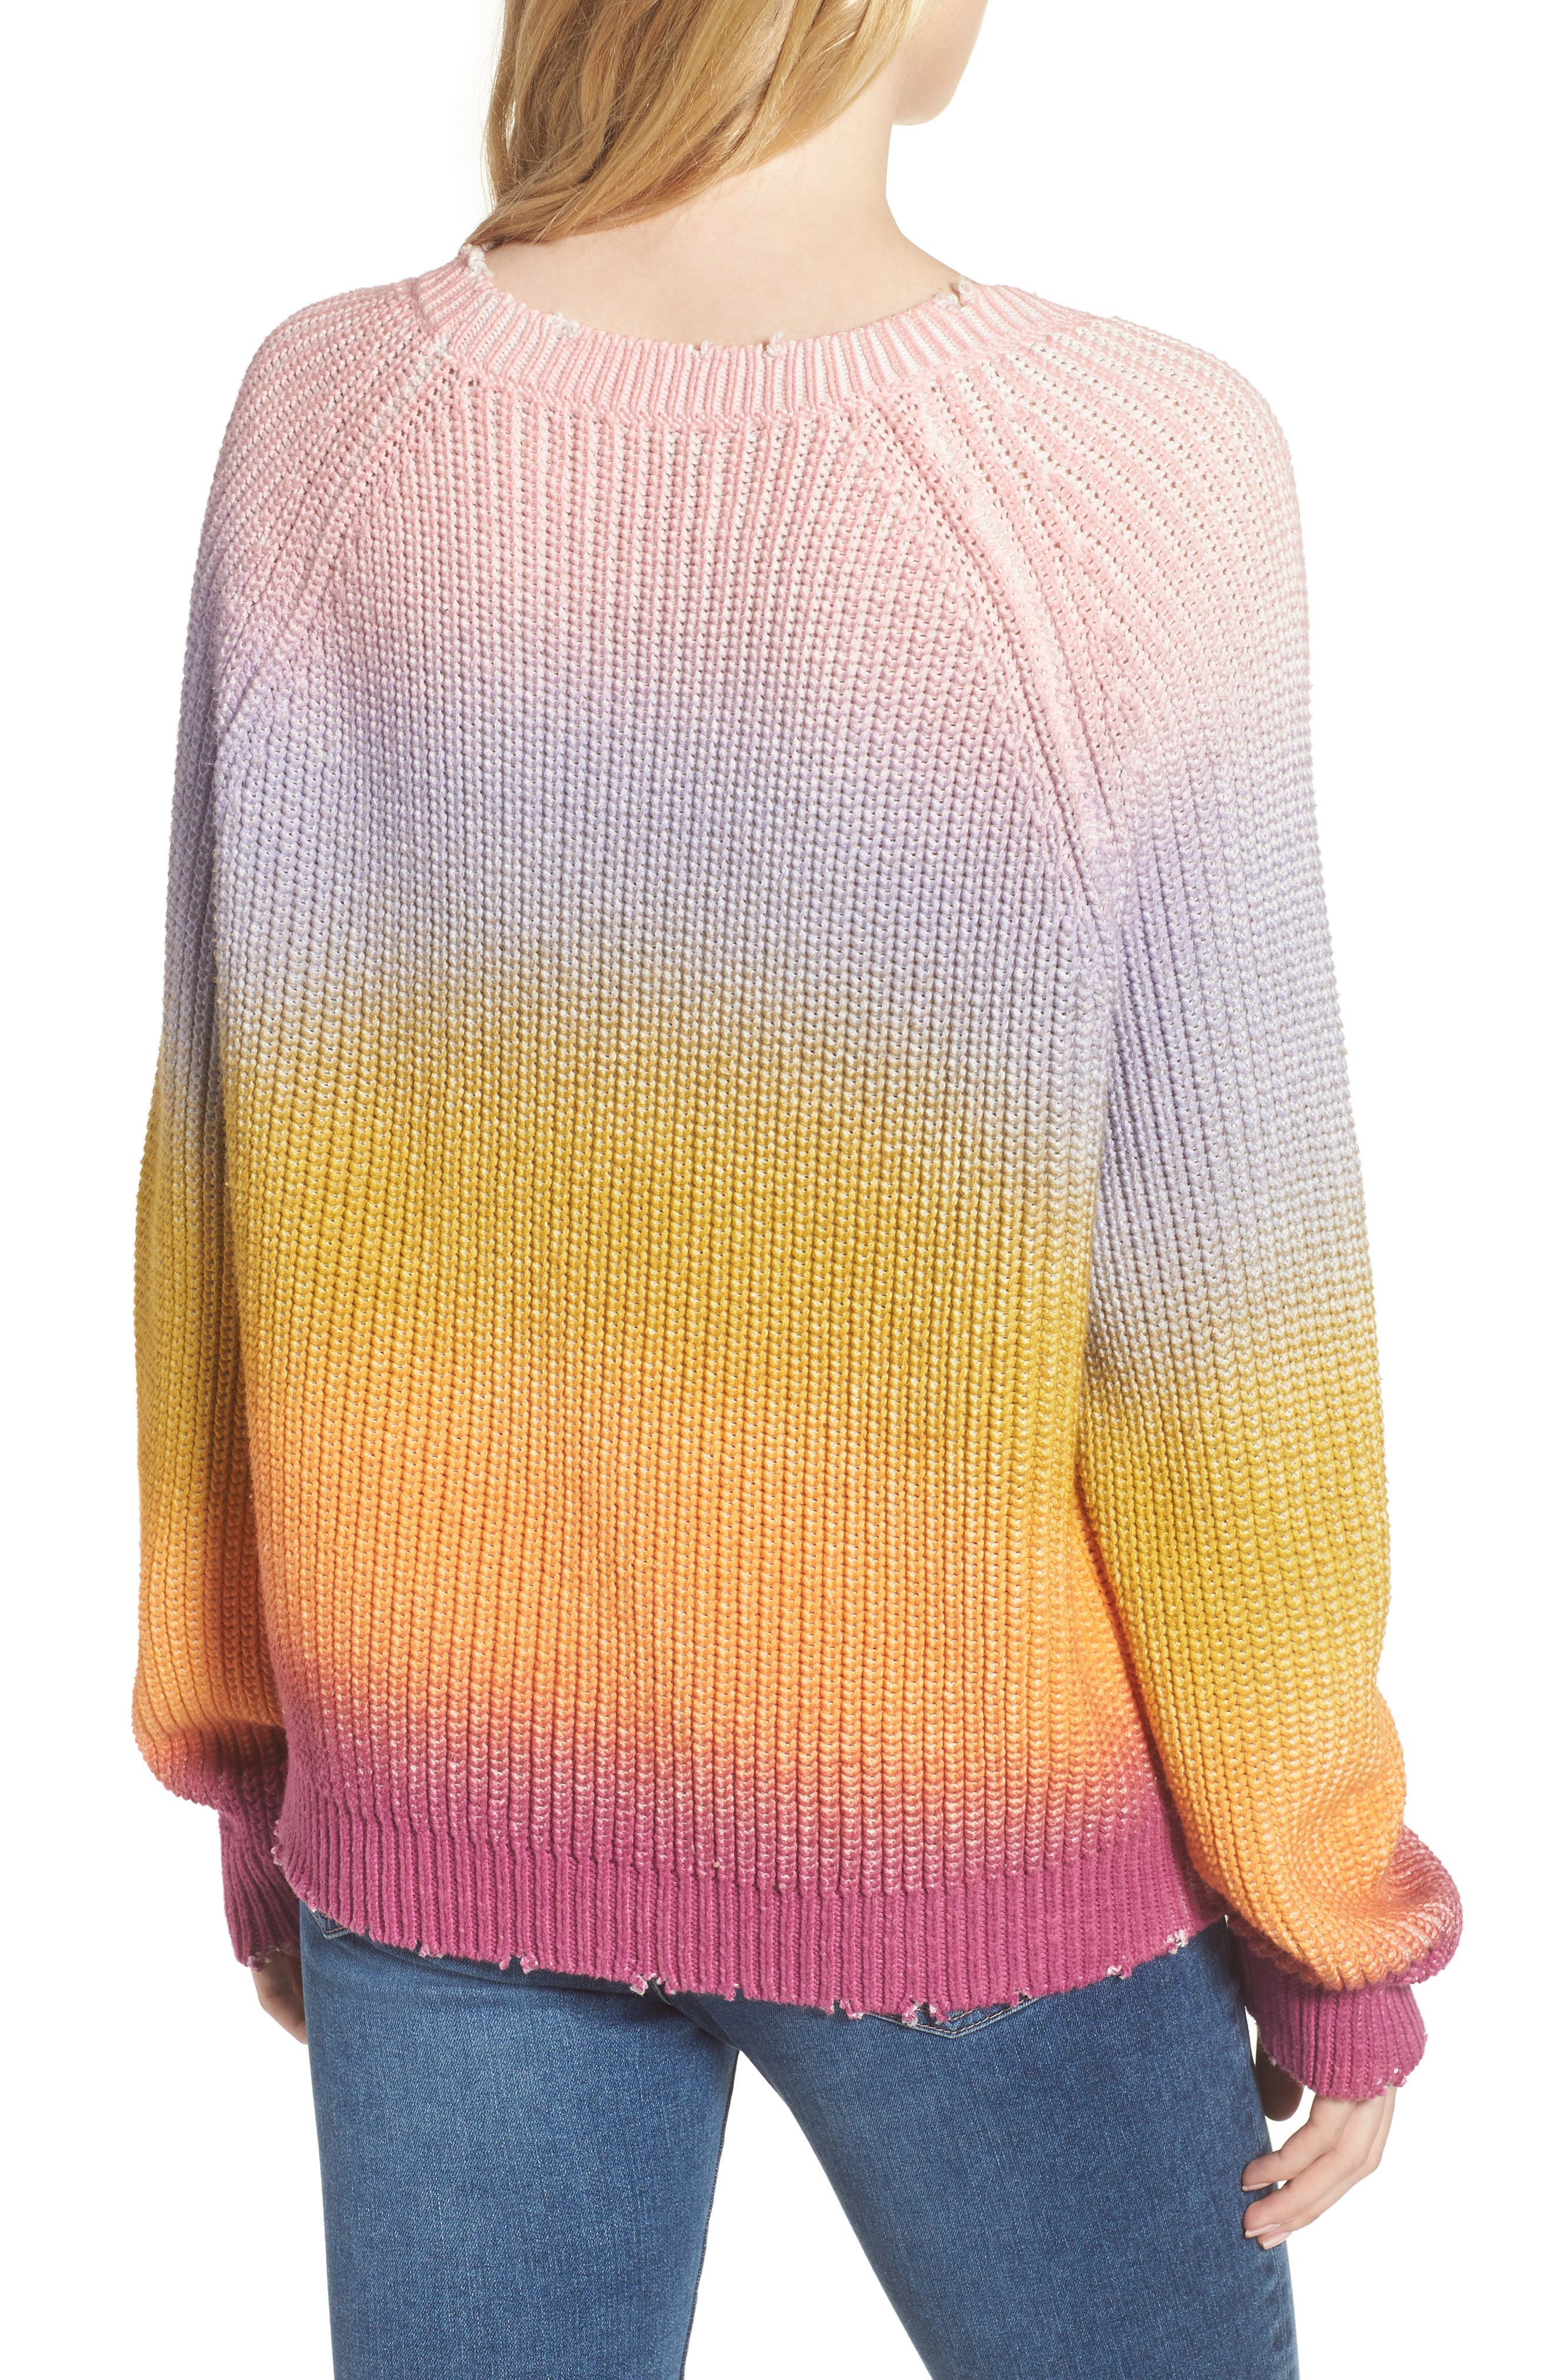 Kary Sweater,                             Alternate thumbnail 2, color,                             Multicolor